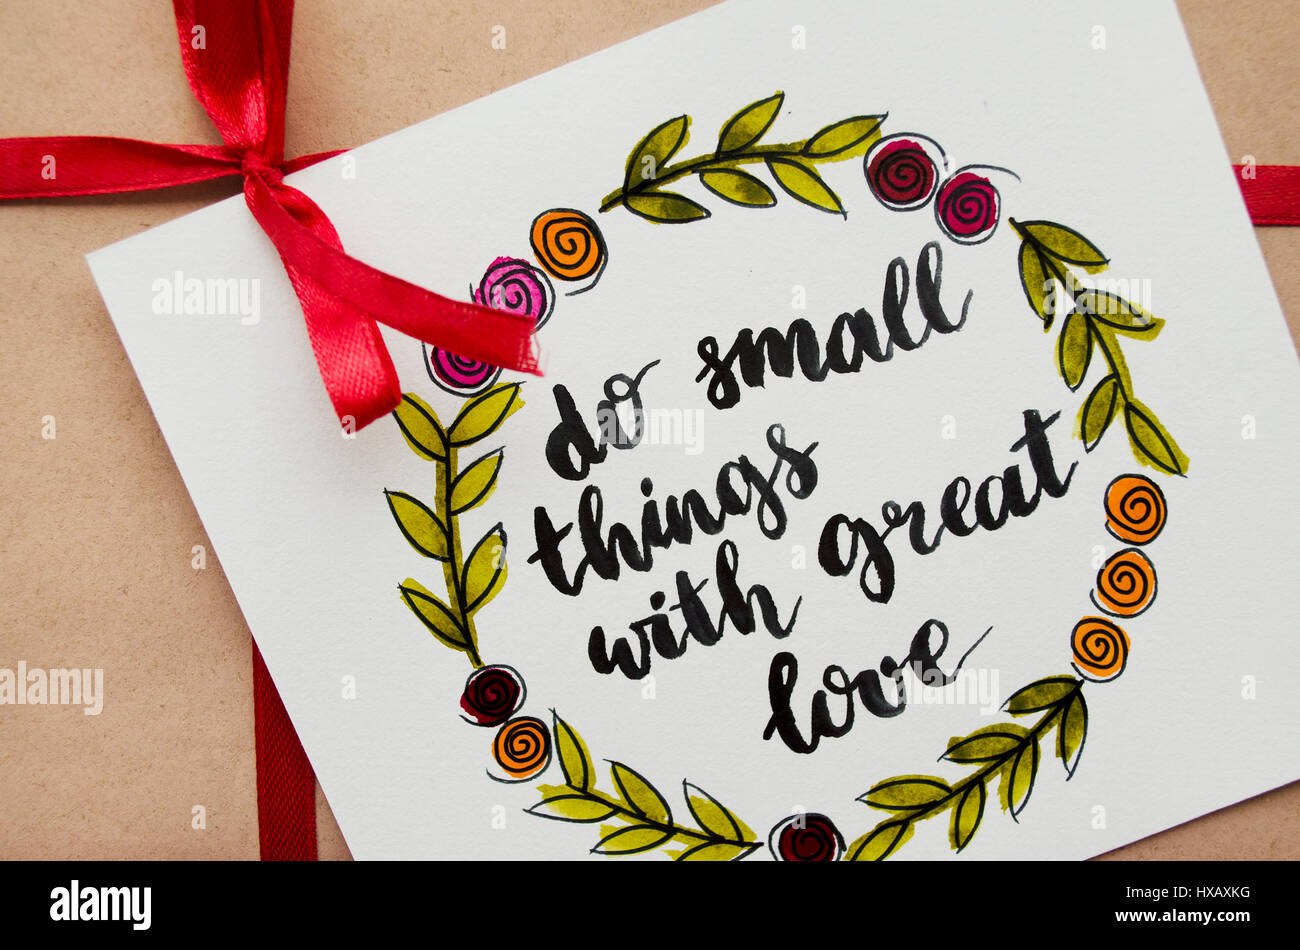 Inspirational Quote Do Small Things With Great Love